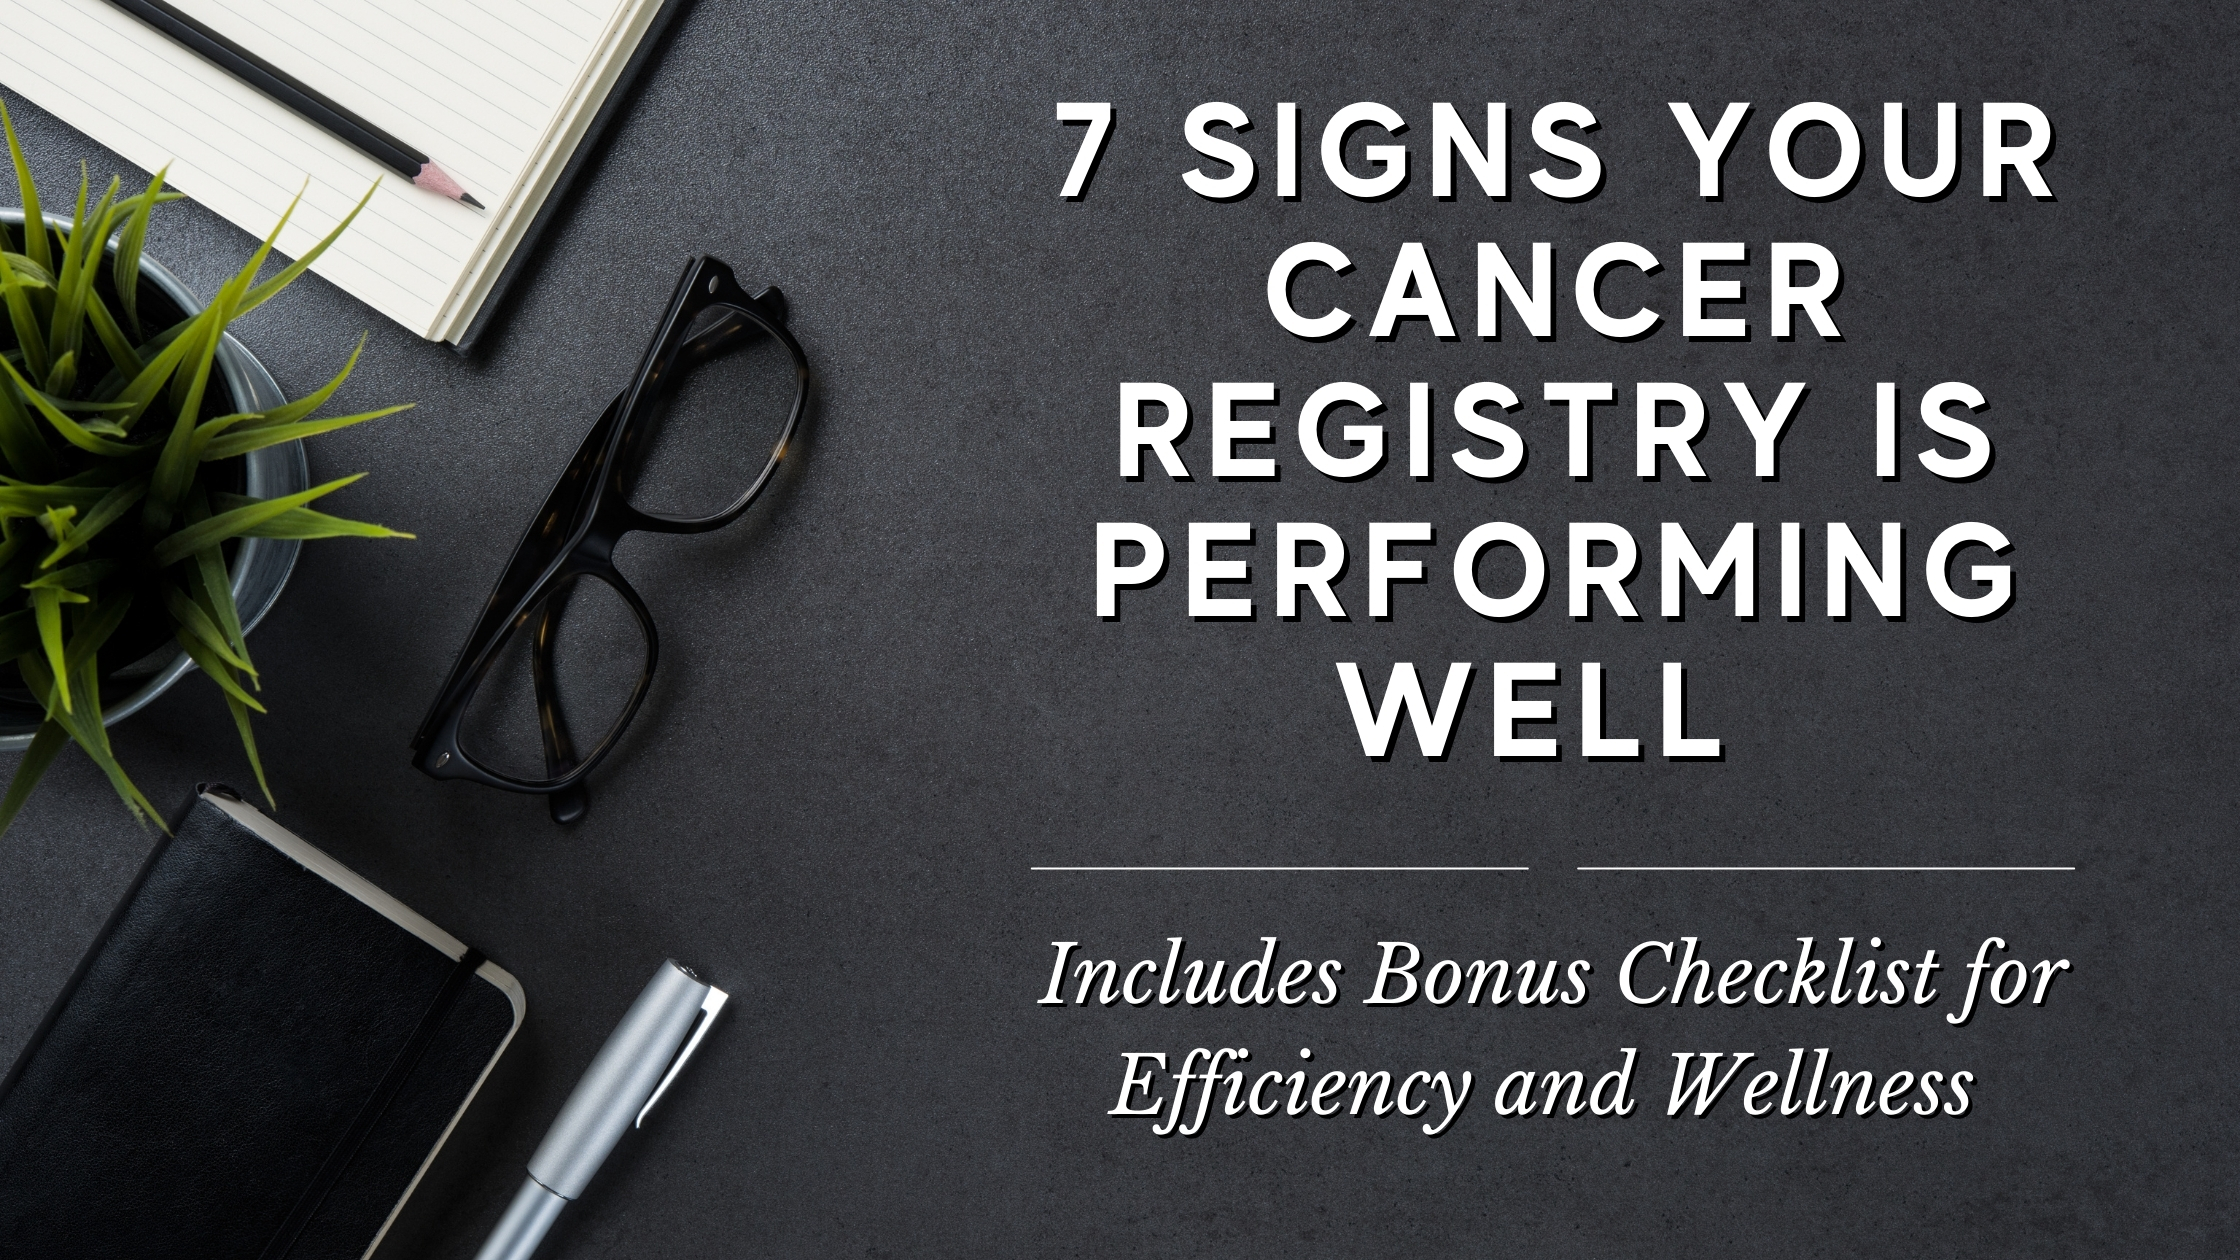 7 Signs Your Cancer Registry is Performing Well